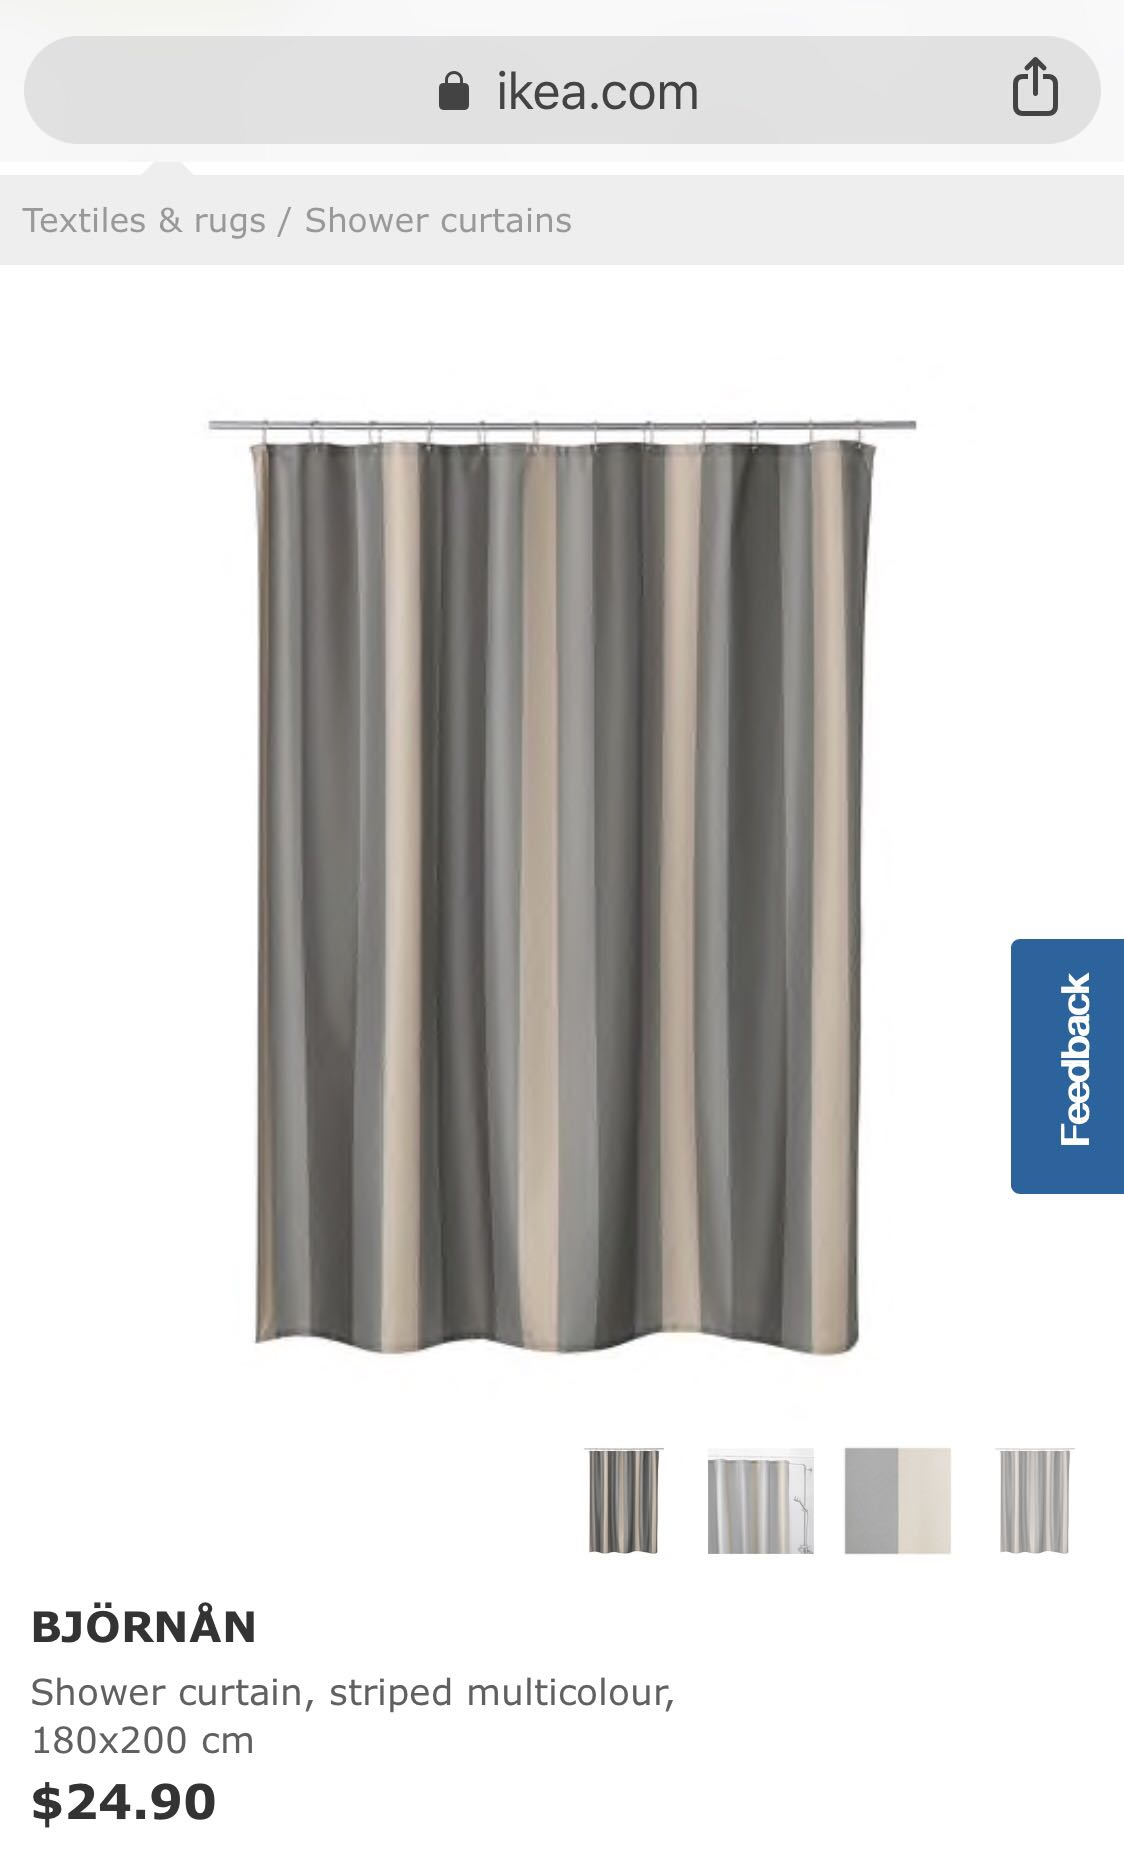 IKEA BJORNAN Shower Curtain Furniture Home Decor Others On Carousell